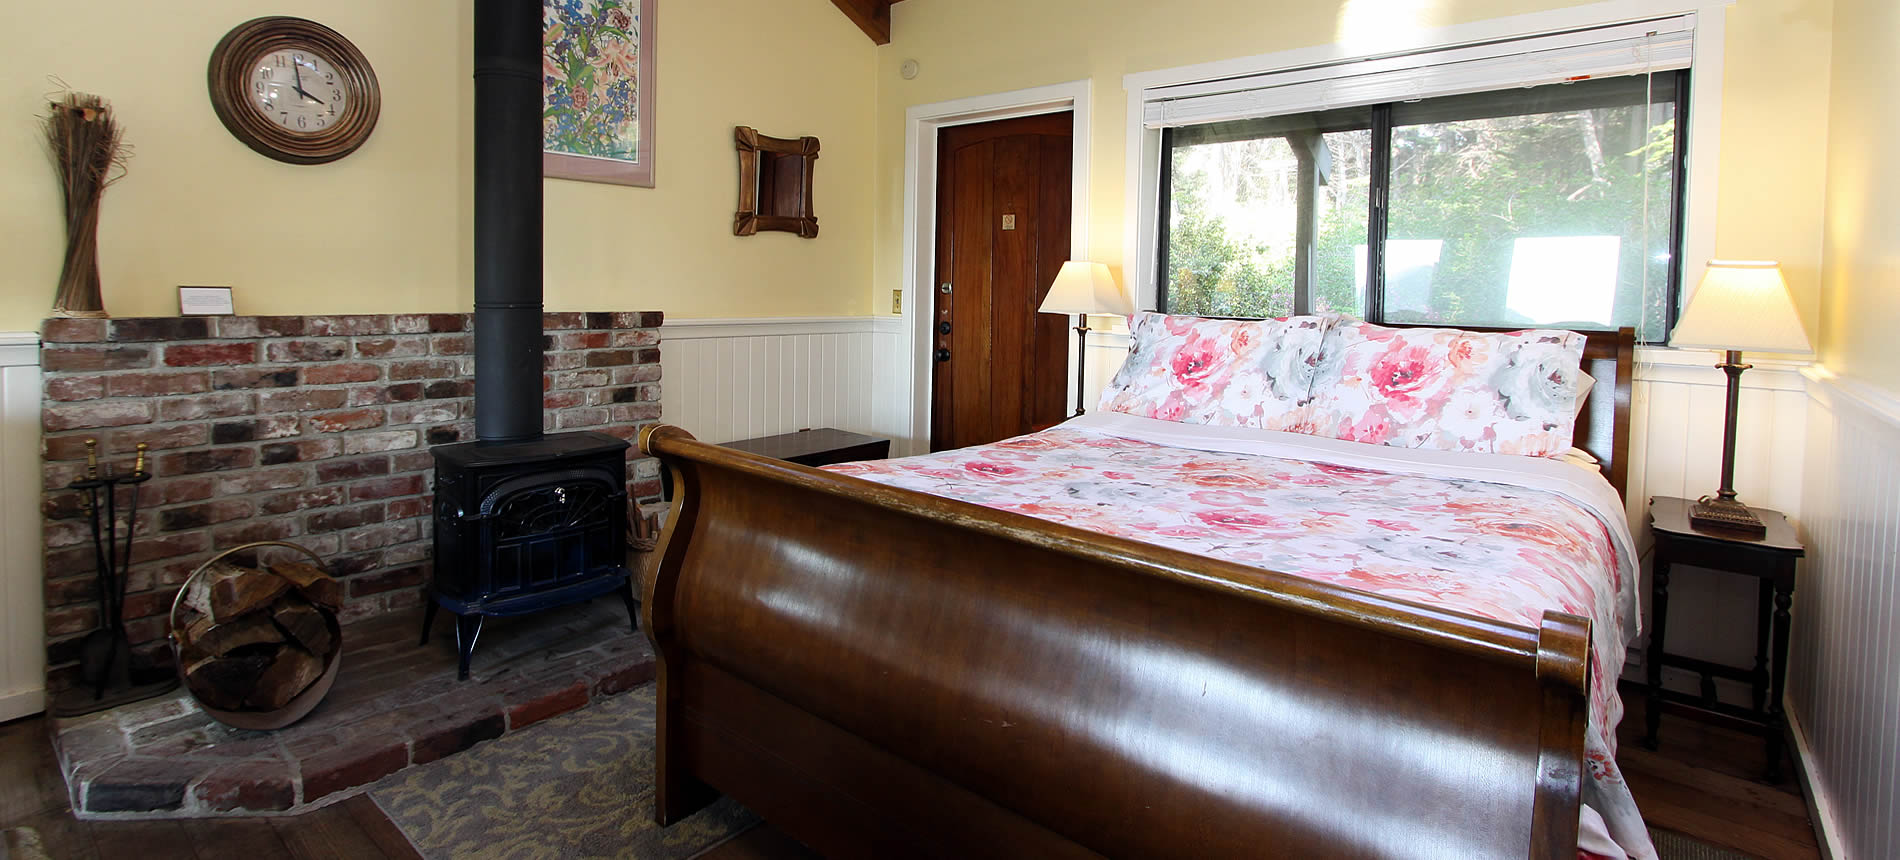 greenwood cottage with sleigh bed and wood stove